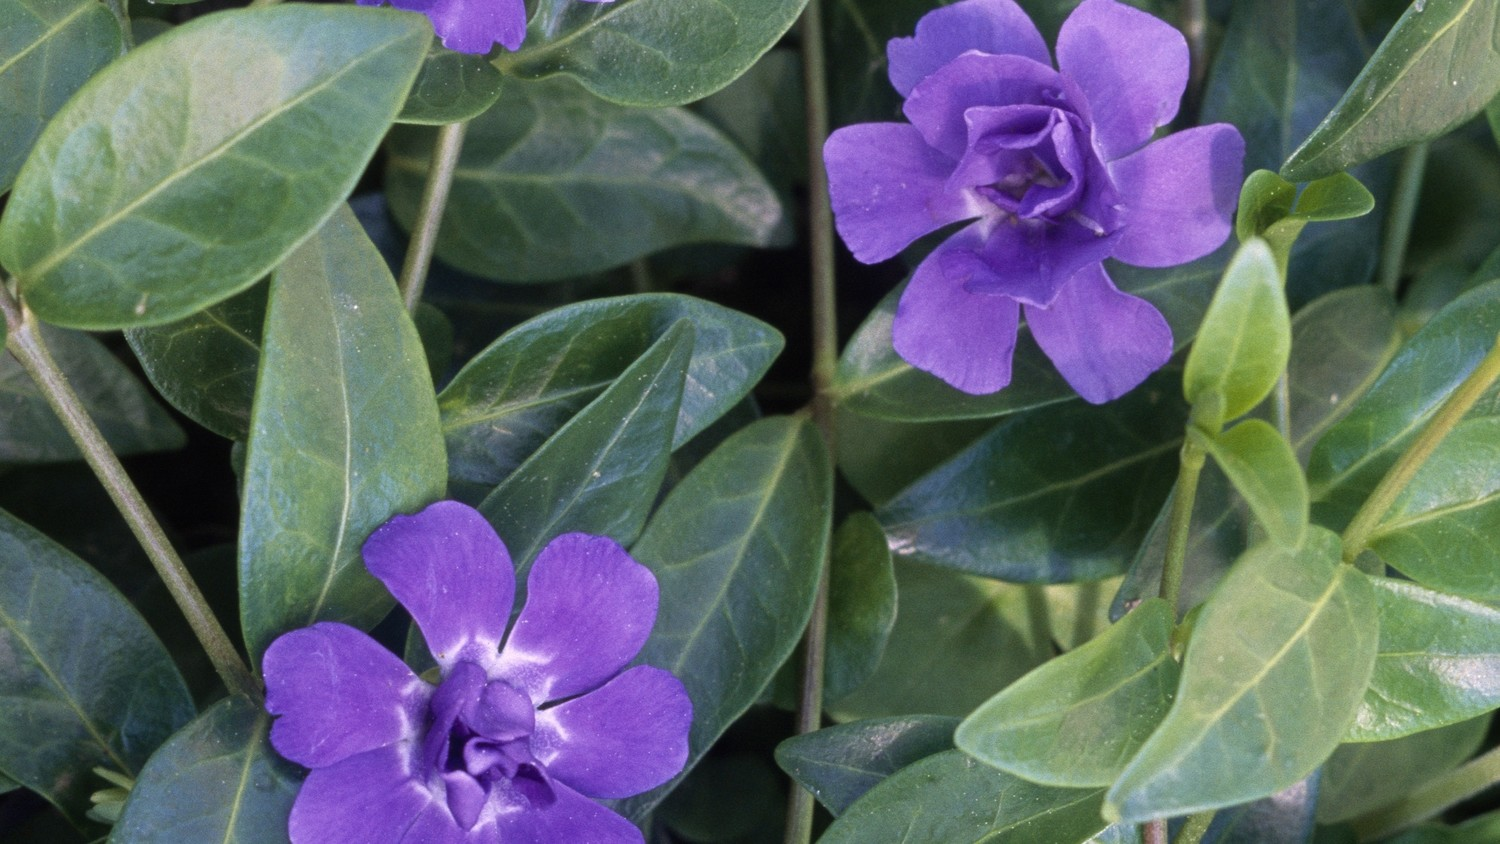 Three Ways to Spot Weeds and Invasive Flowers in Your Garden